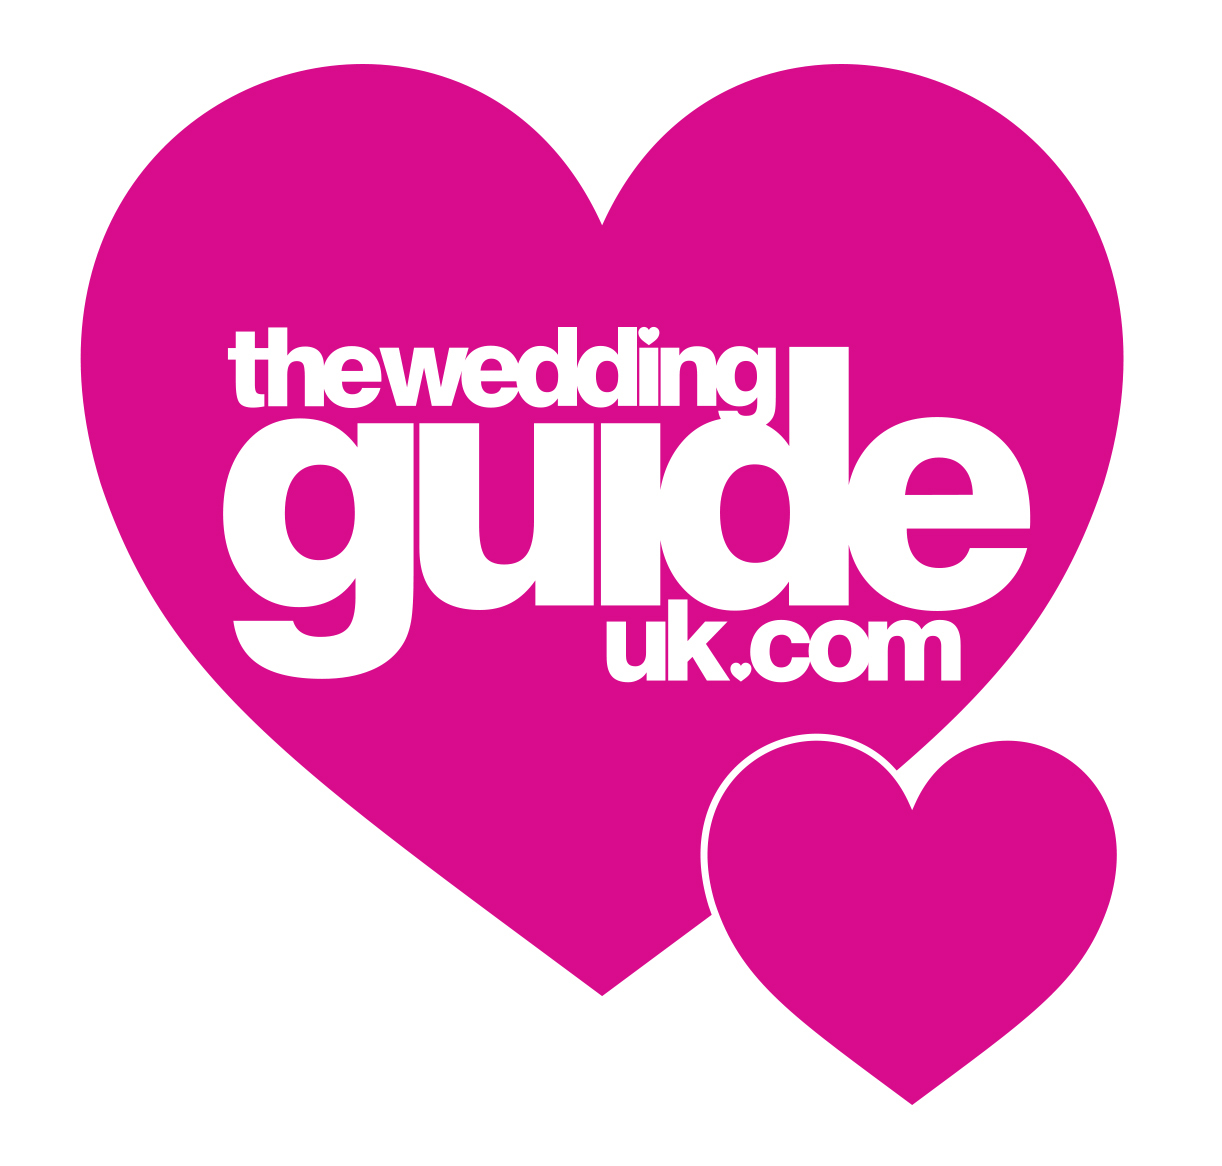 The Wedding Guide UK logo